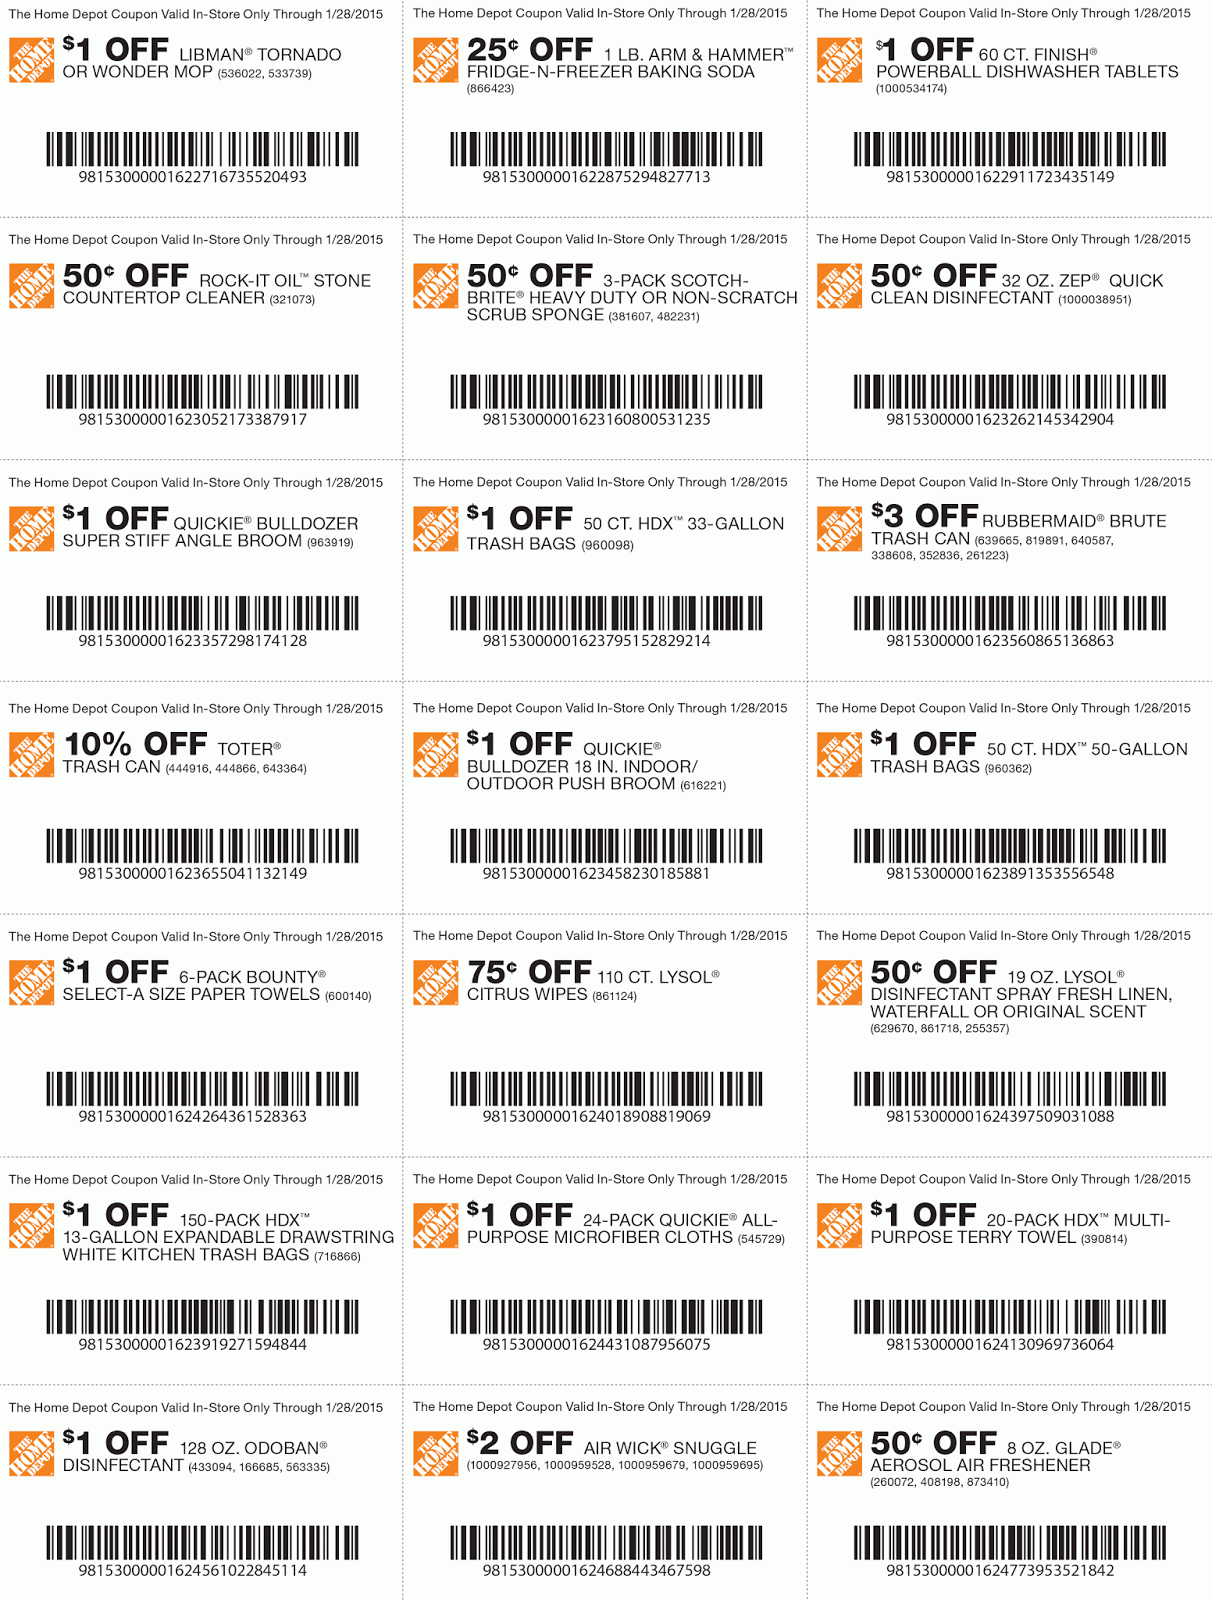 Home Depot Discount Printable Coupons Home Depot Coupons